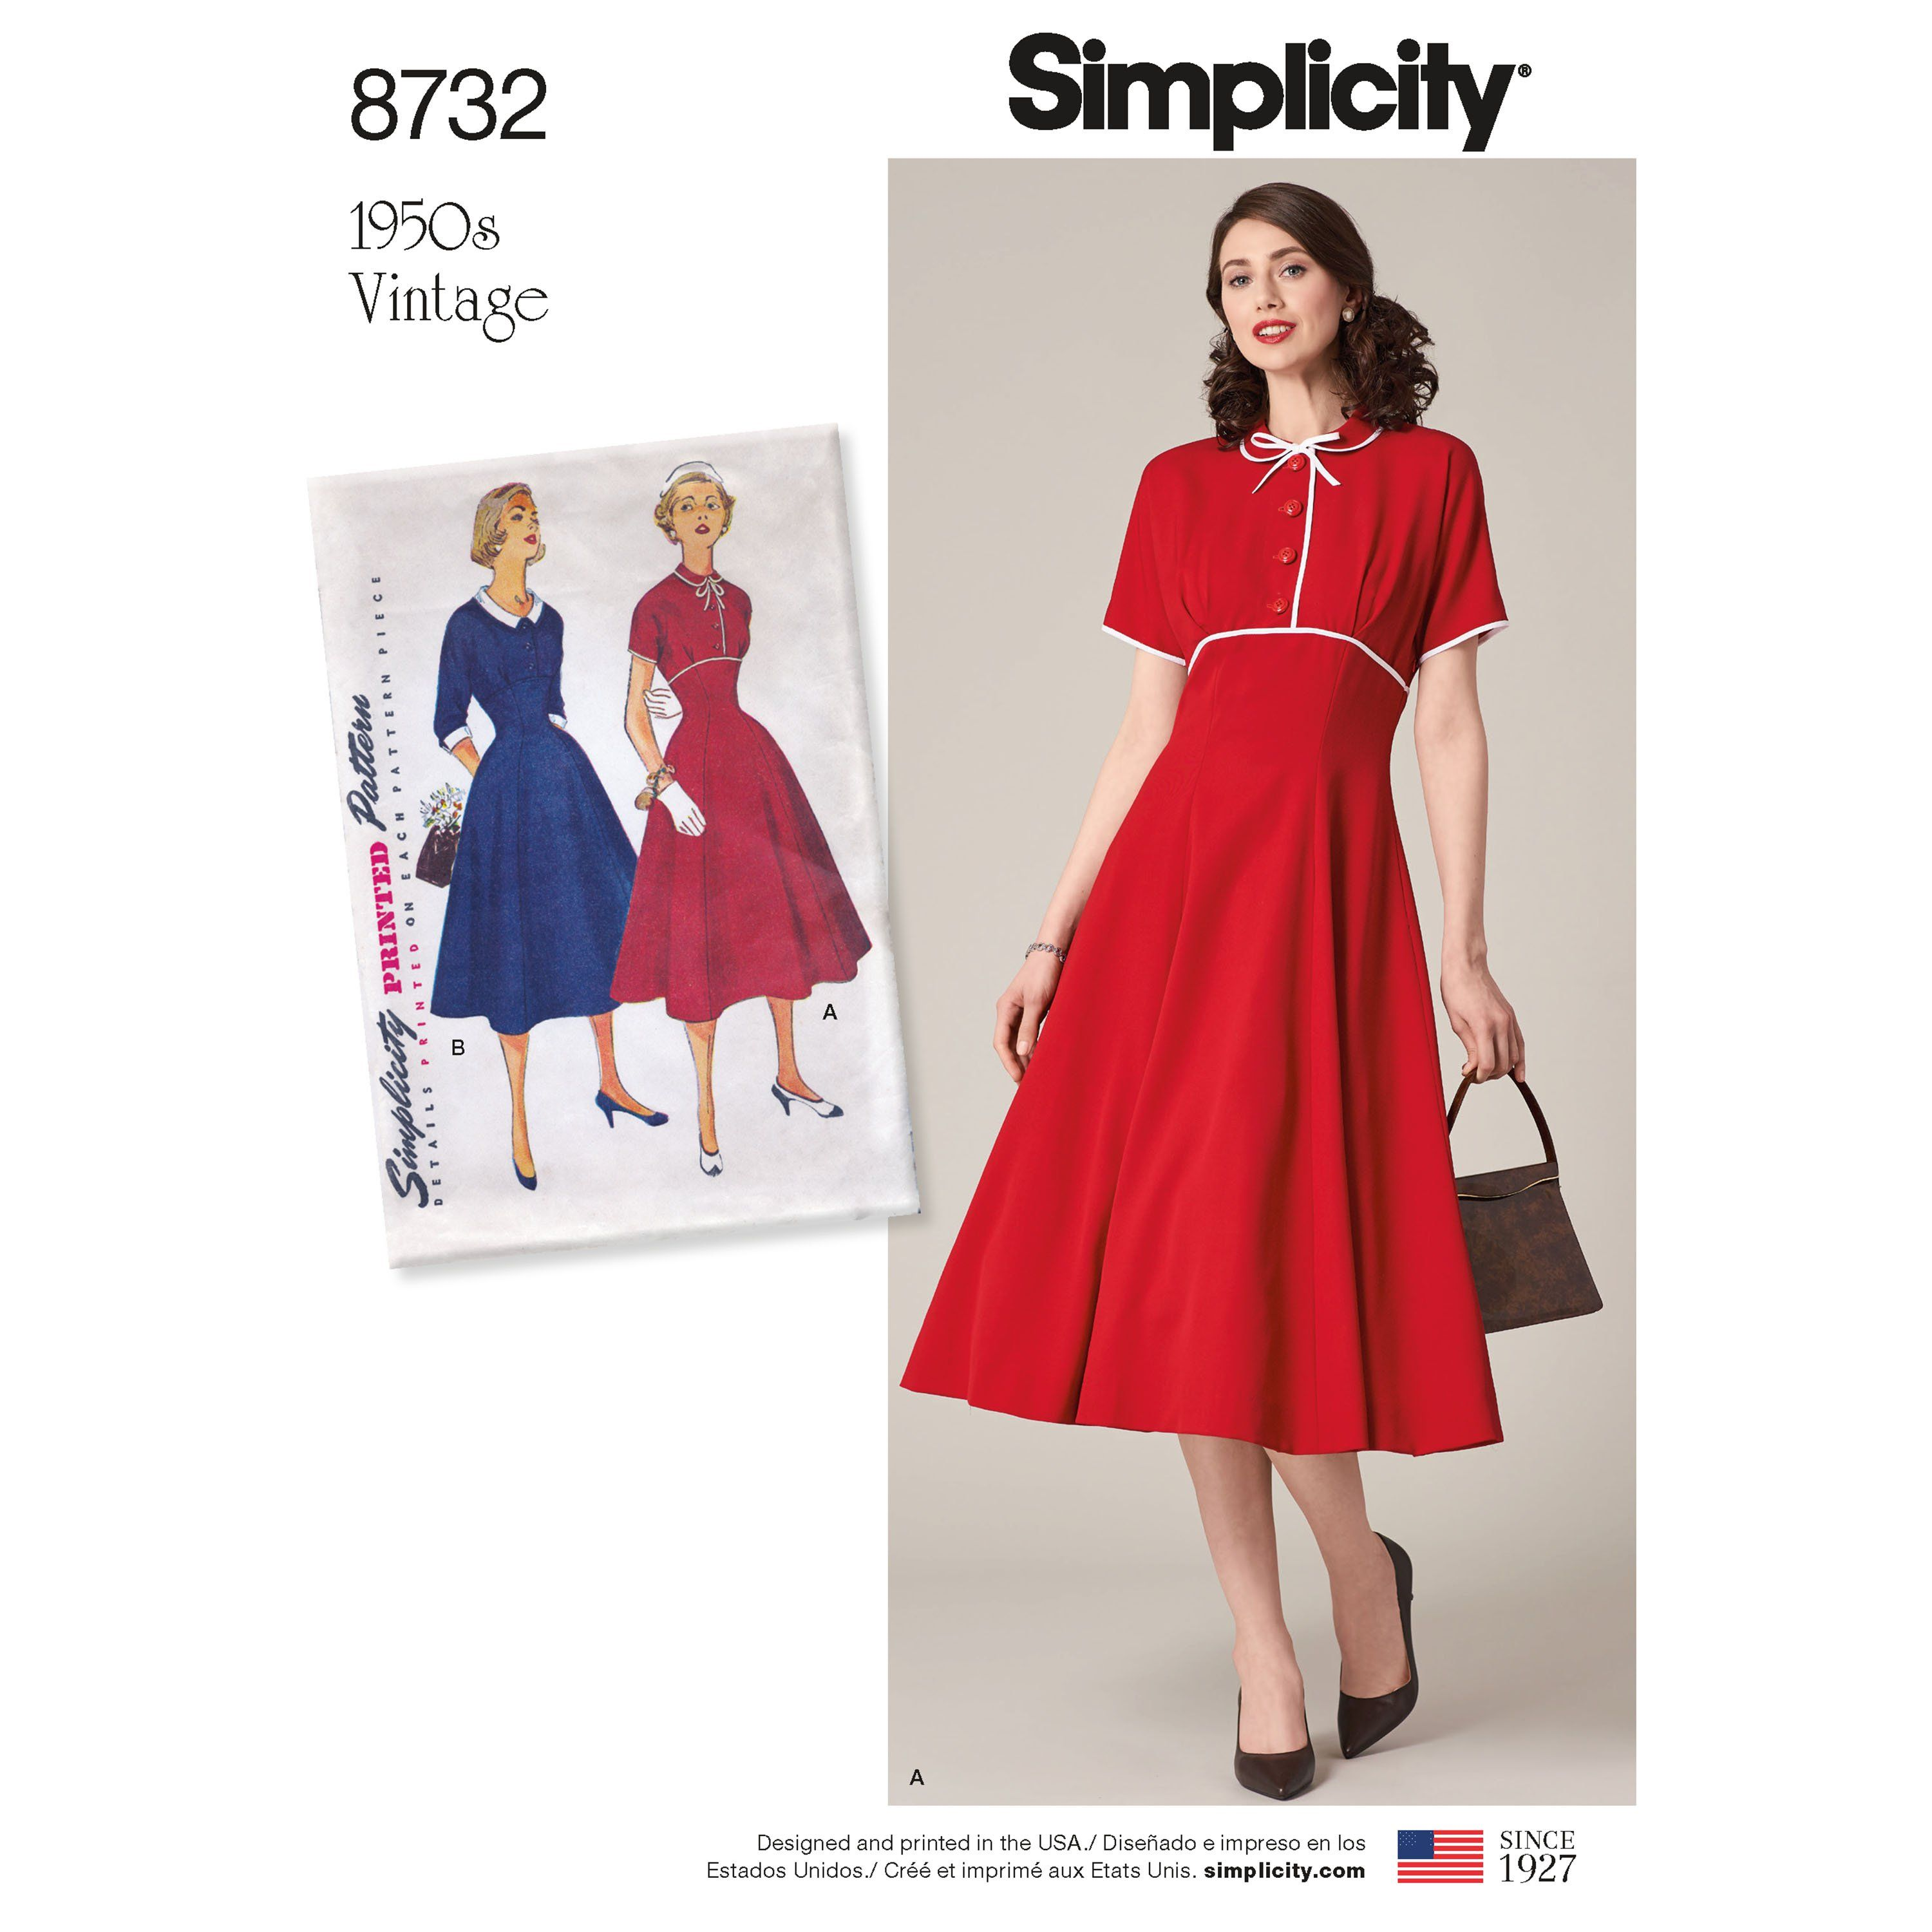 50s 1950s 1960s style B5748 repro vintage style Retro dress sewing pattern